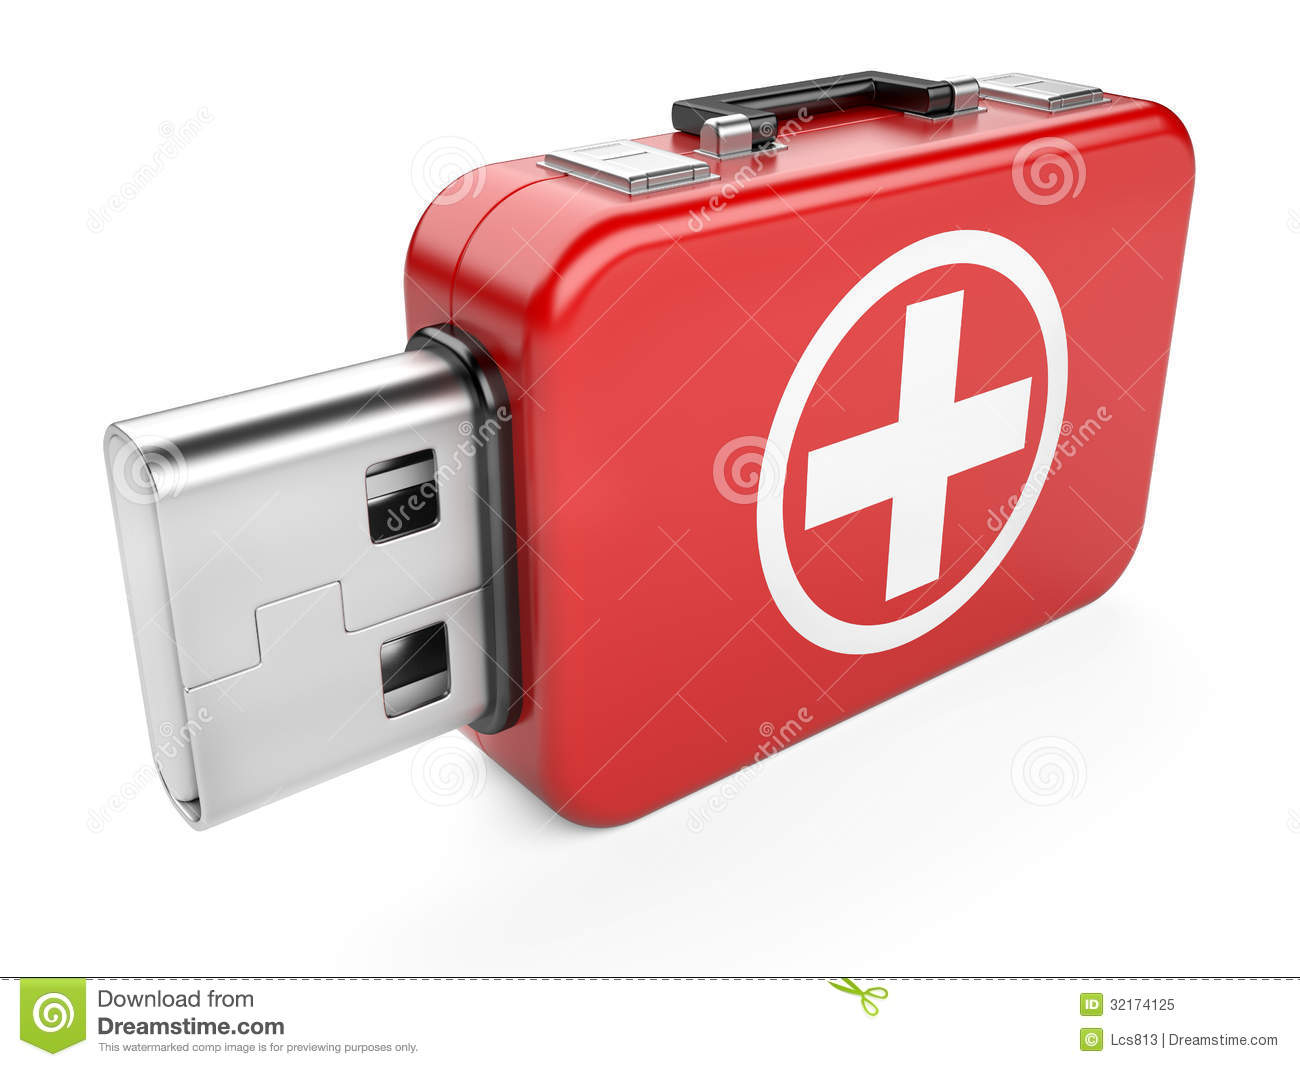 how to transfer photos from iphoto to usb flash drive